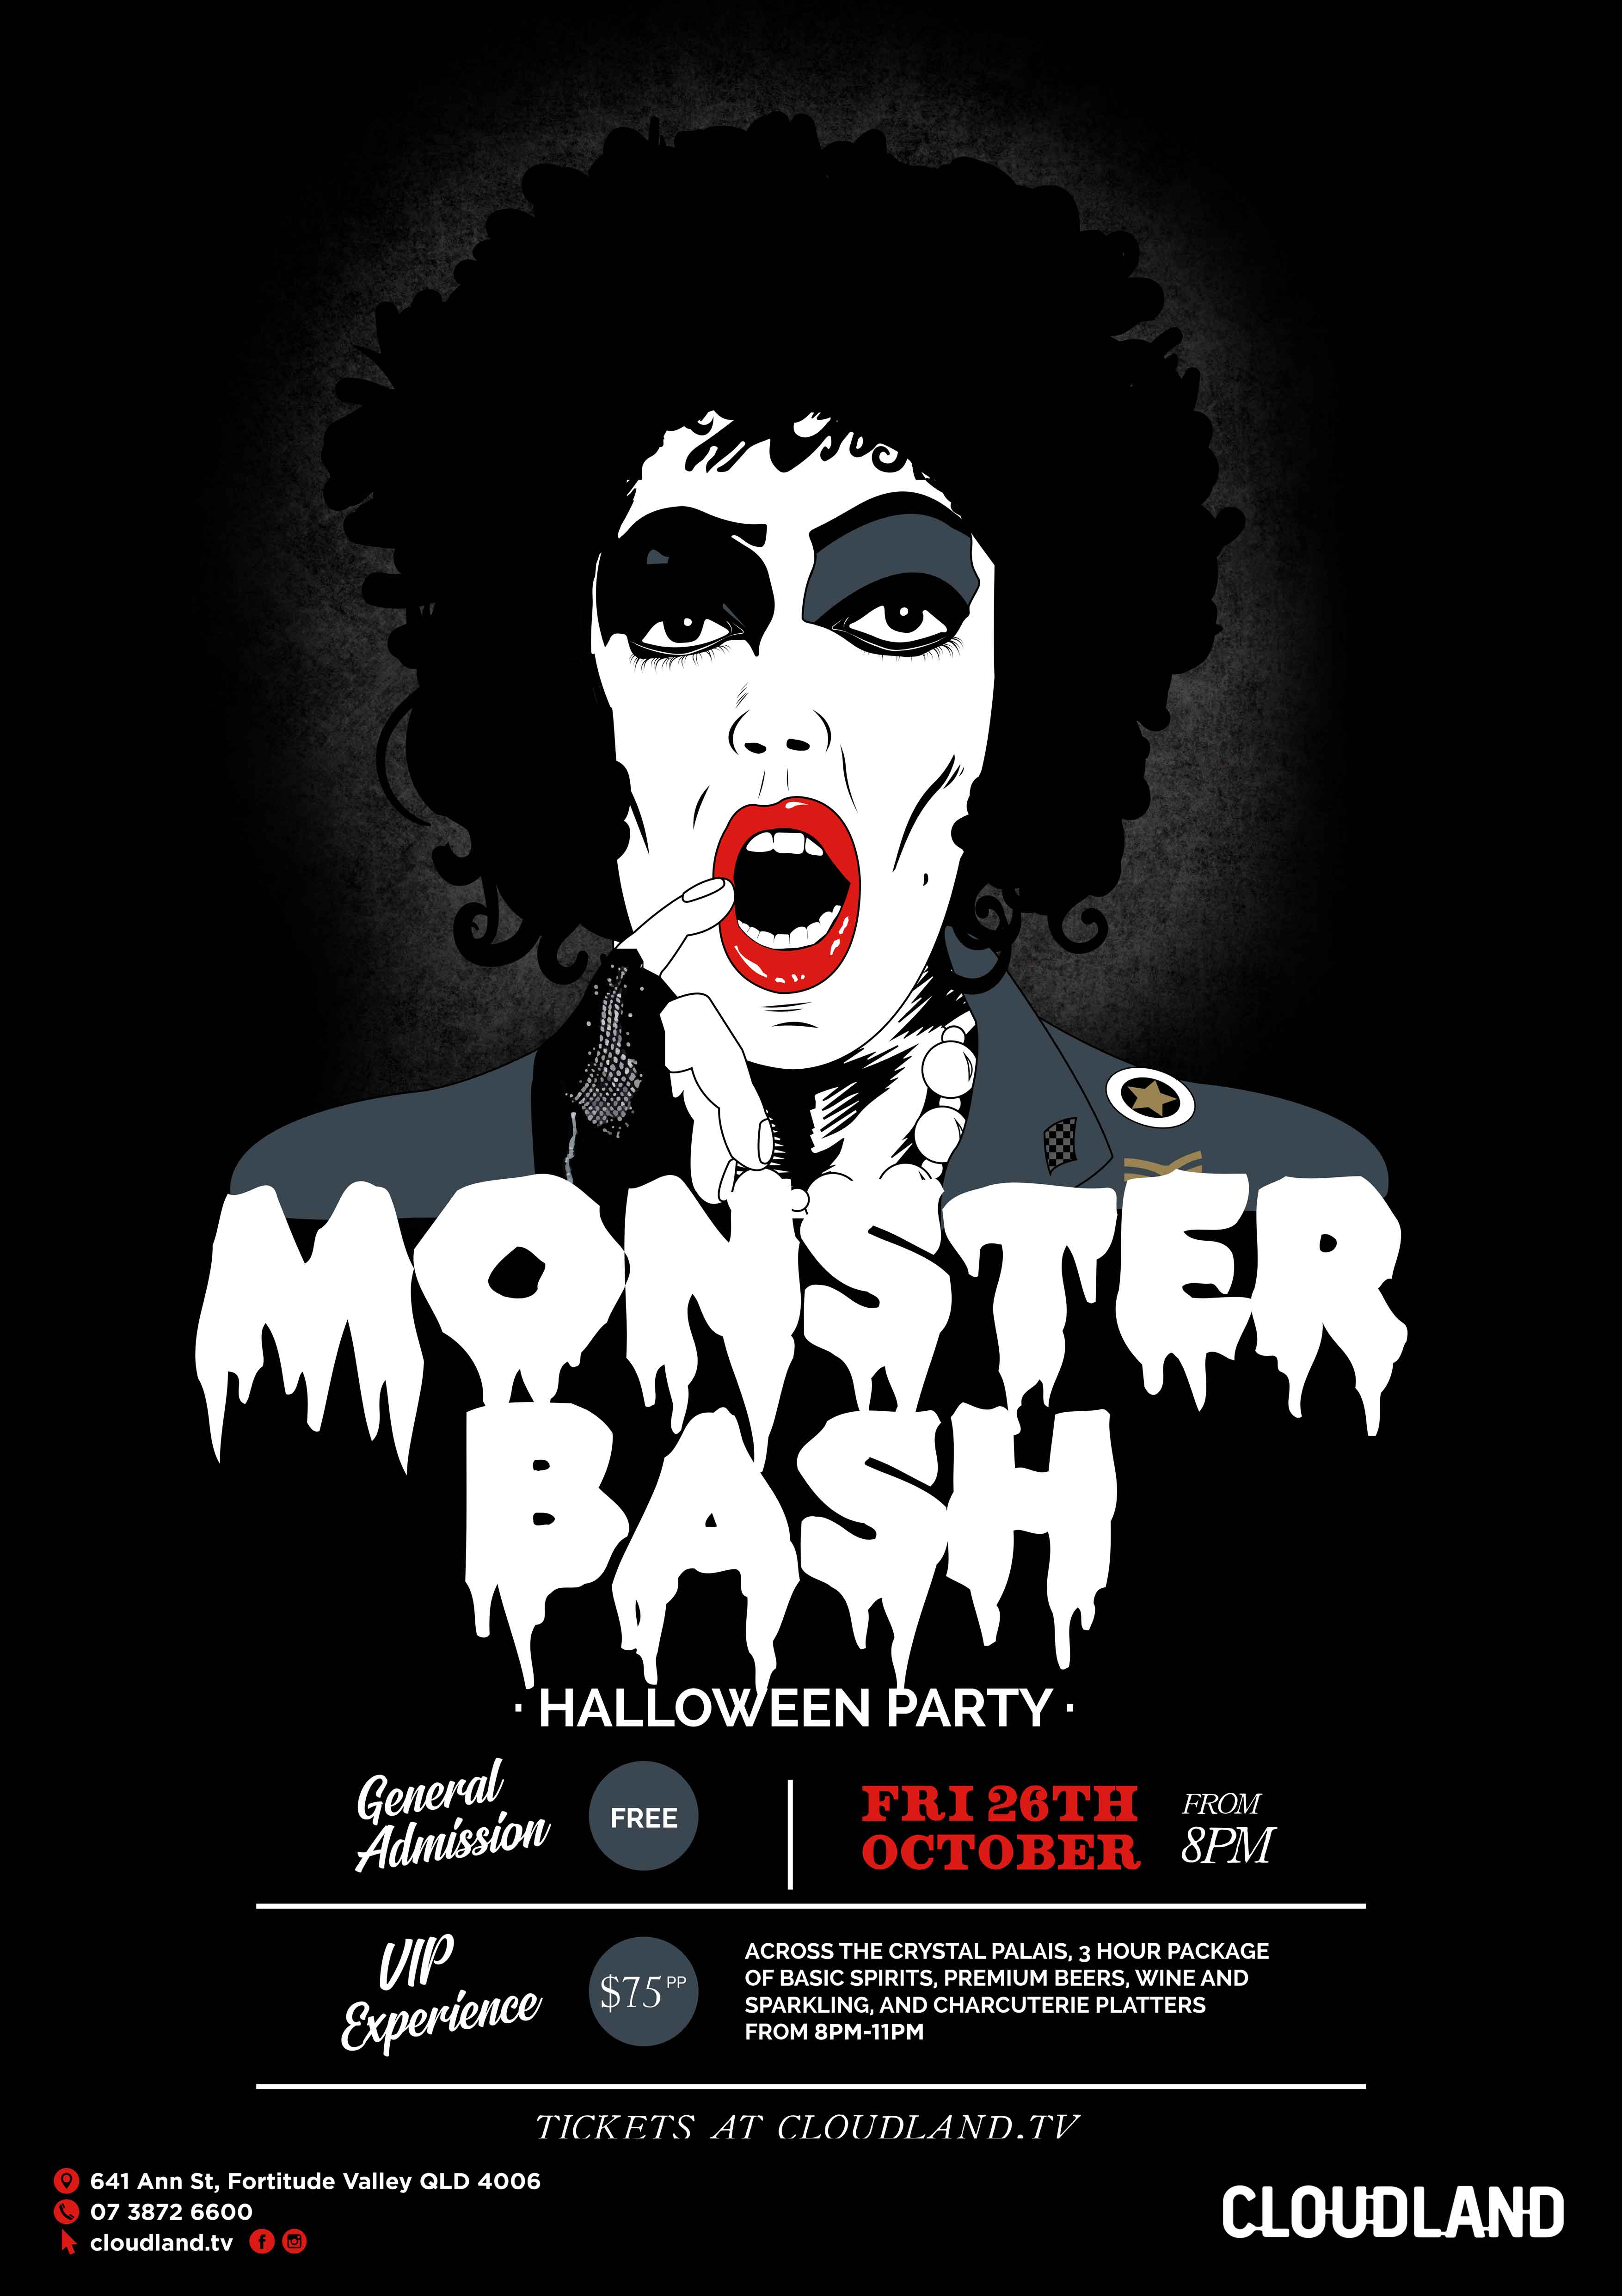 Cloudland Monster Bash, Halloween Party